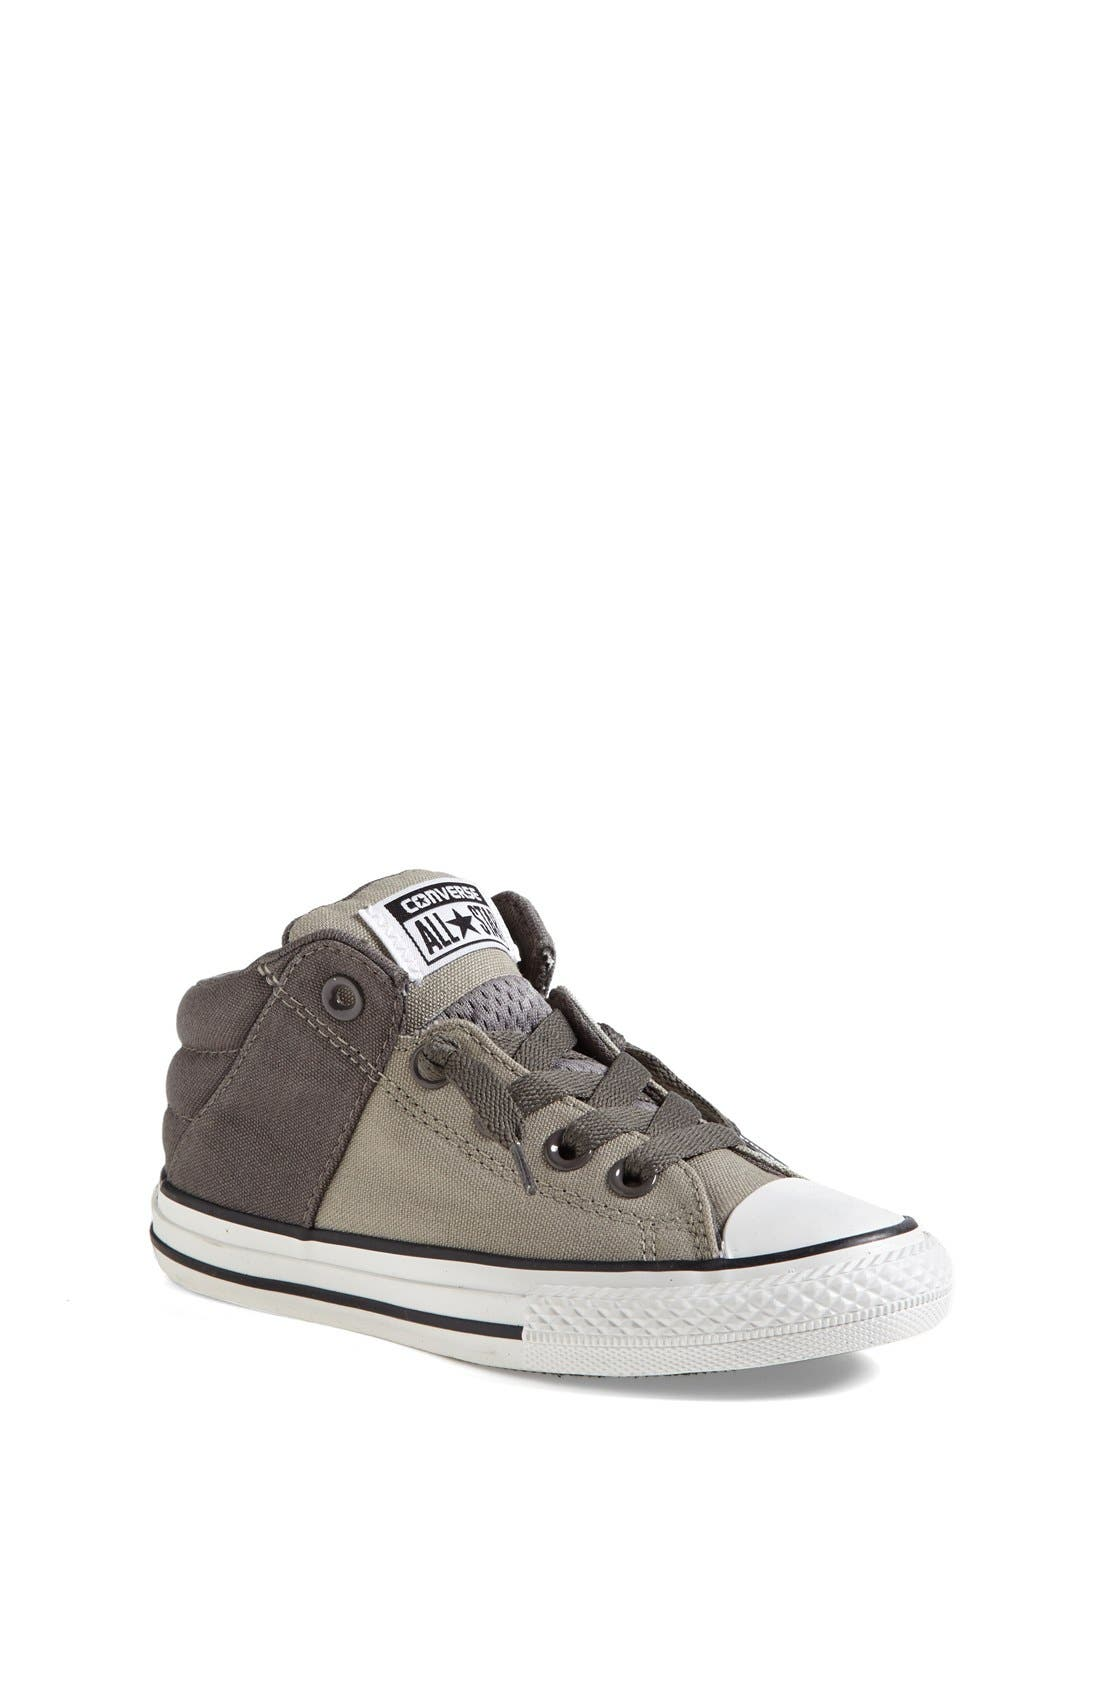 Alternate Image 1 Selected - Converse Chuck Taylor® All-Star® 'Axel' Sneaker (Toddler, Little Kid & Big Kid)